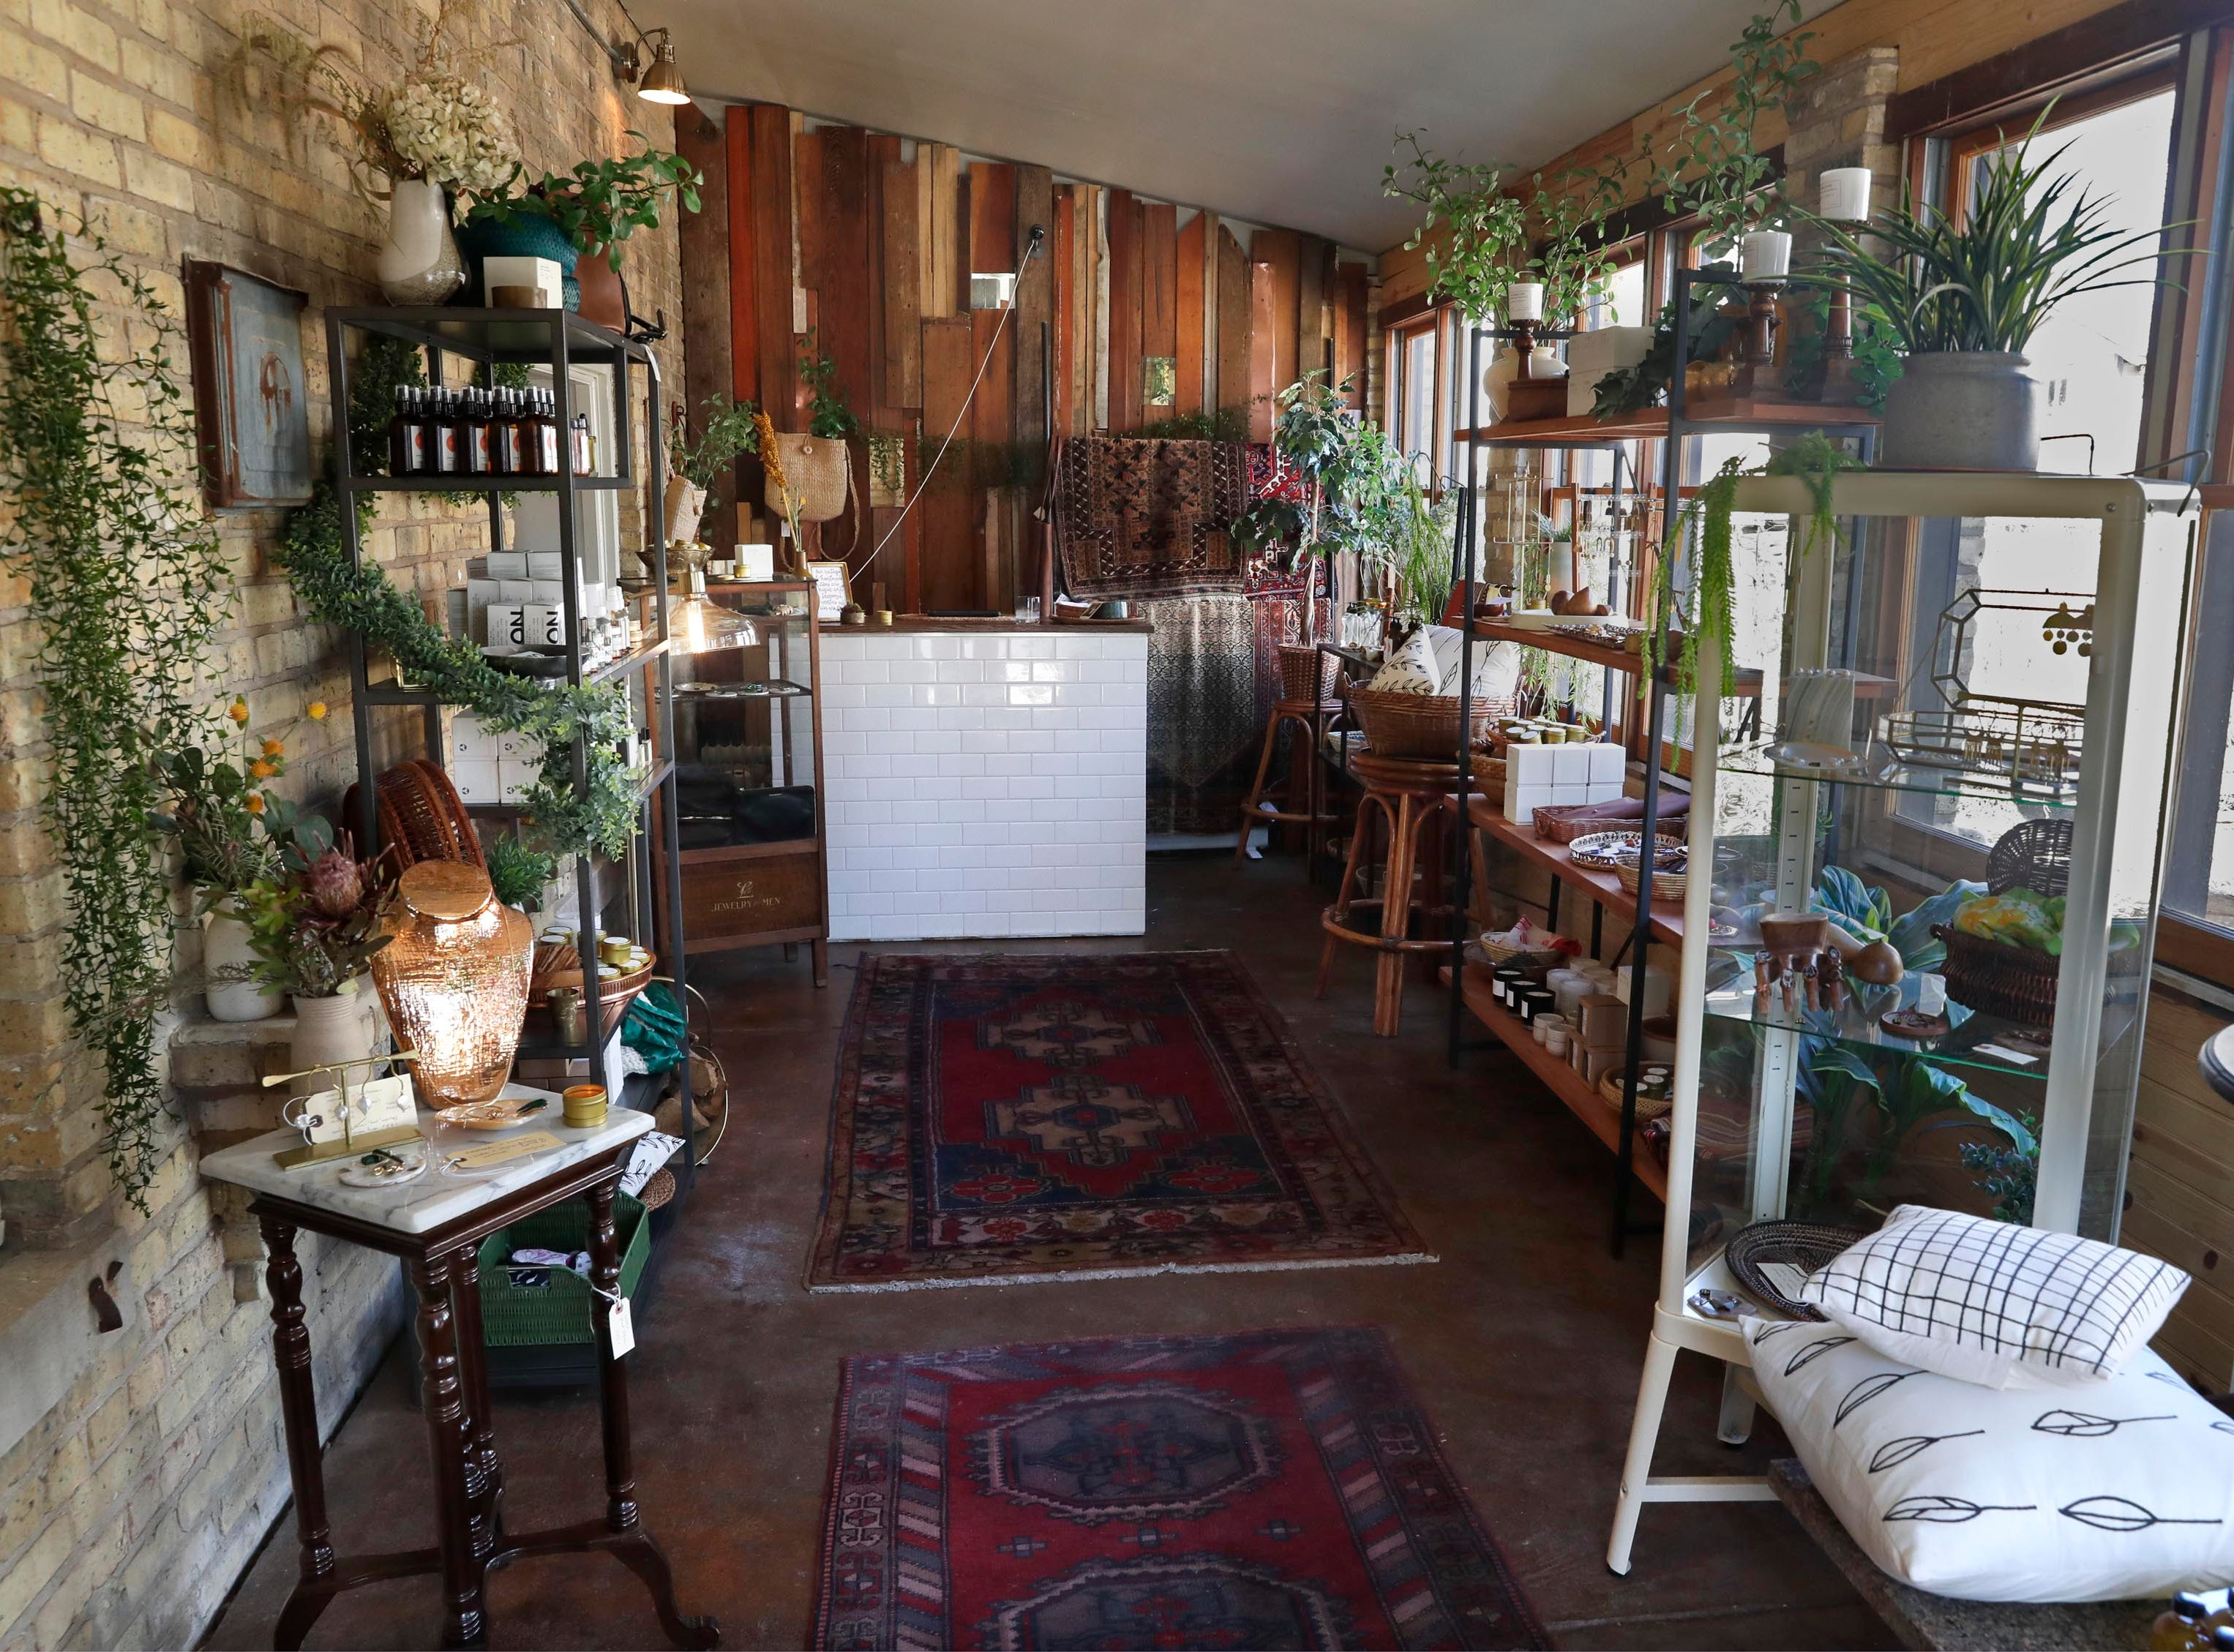 Whitney Schaefer's shop at the back of the building, Orange and Blue Co., carries vintage items and new, handmade goods including jewelry and leather purses. It can be reached from the restaurant or through its own entrance at 1809 N. Hubbard St.